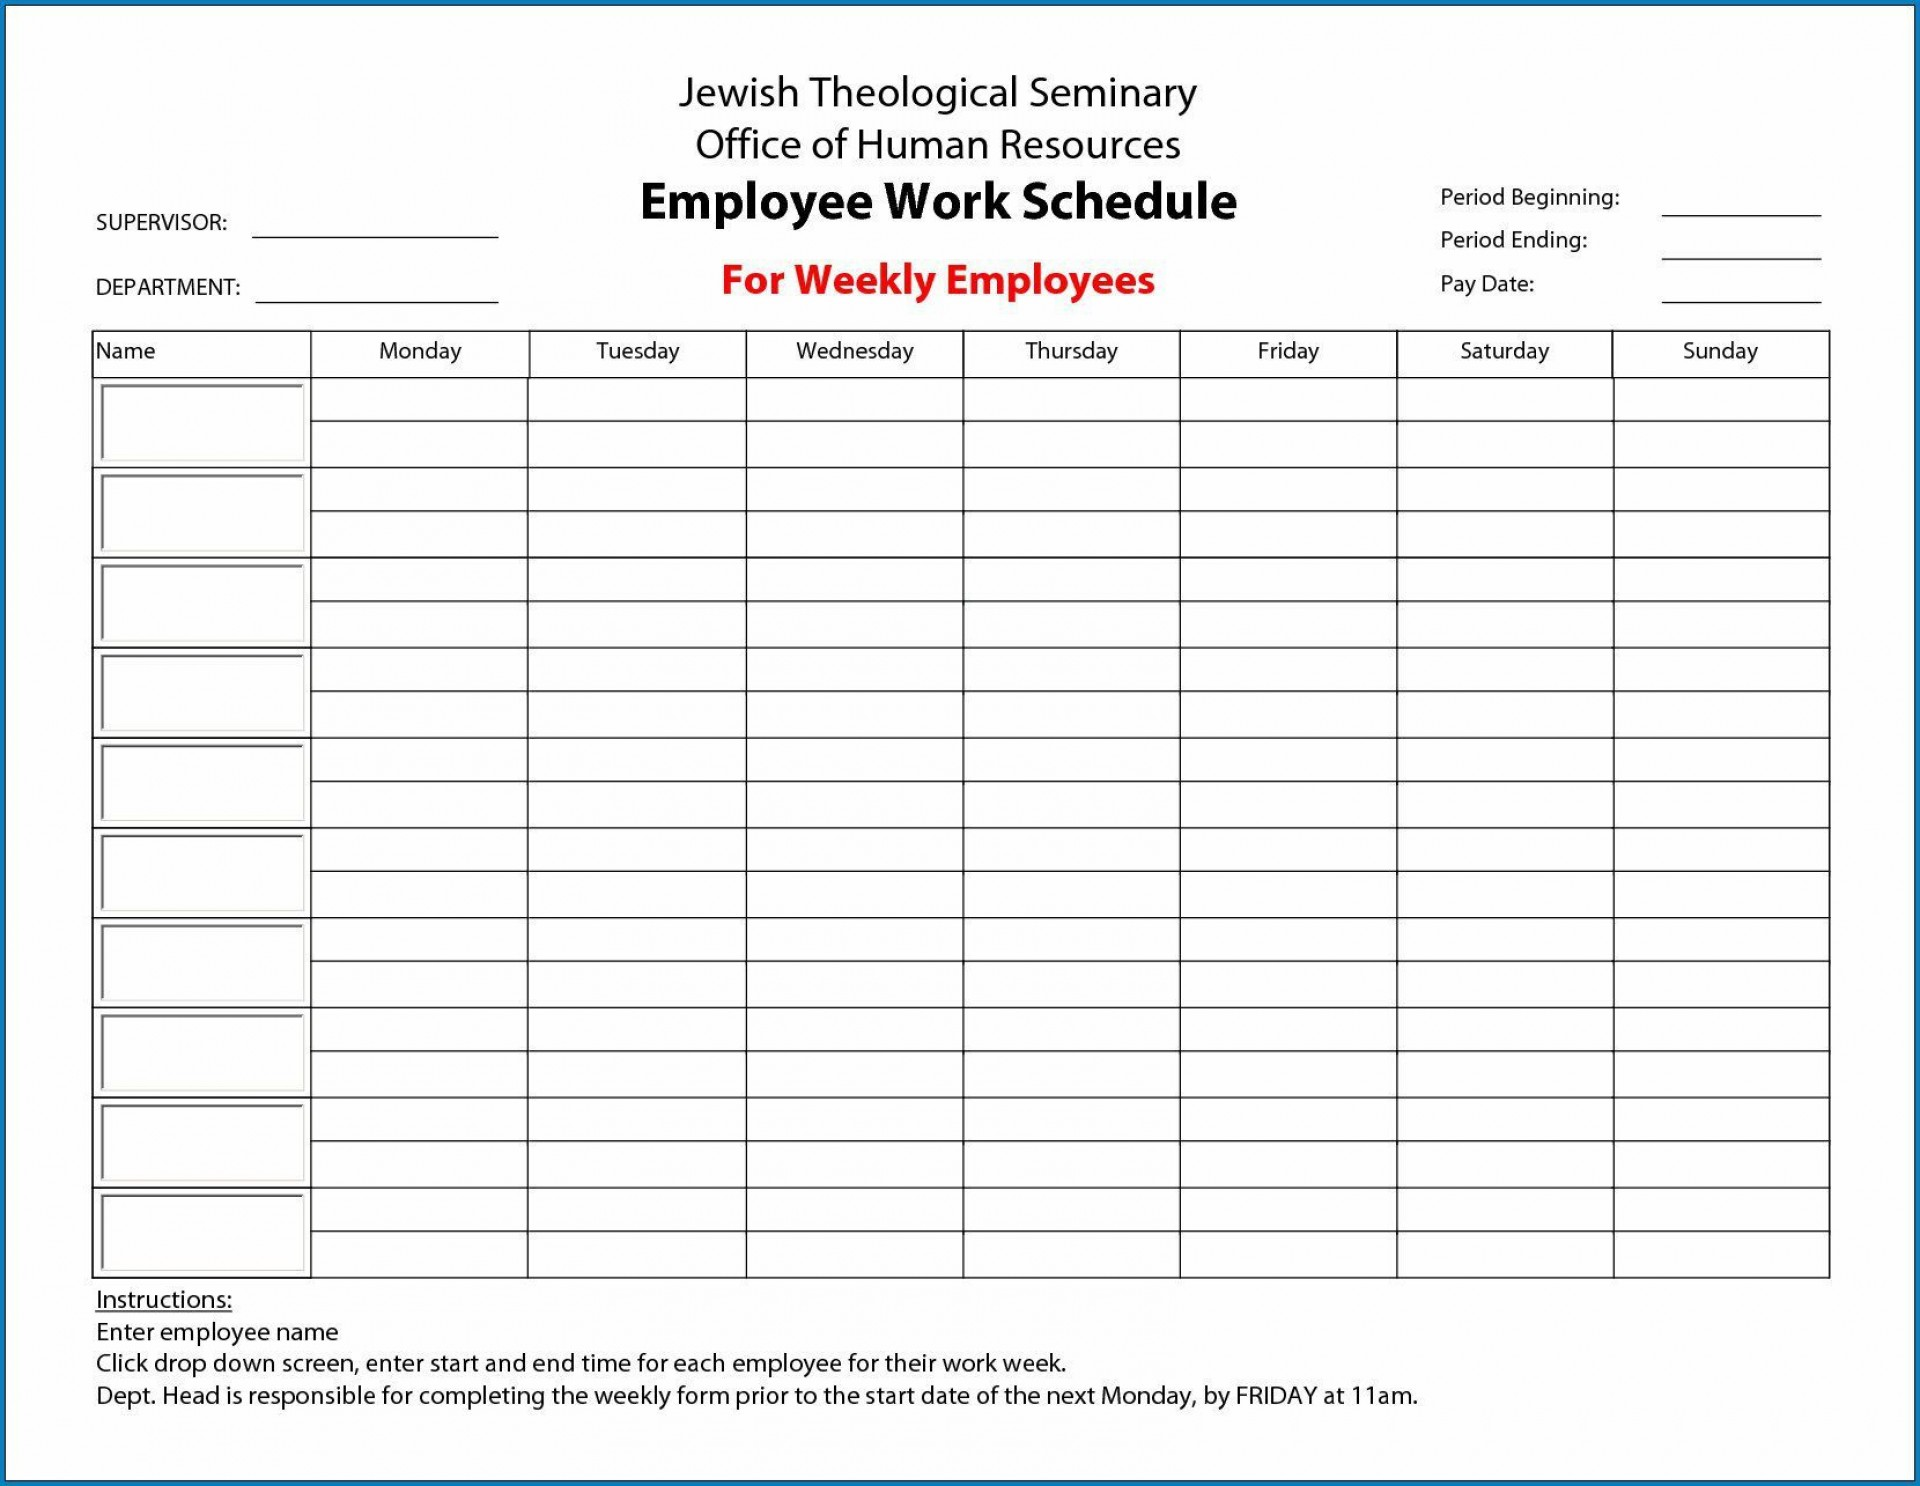 000 Imposing Free Employee Scheduling Template Highest Quality  Templates Weekly Work Schedule Printable Lunch1920